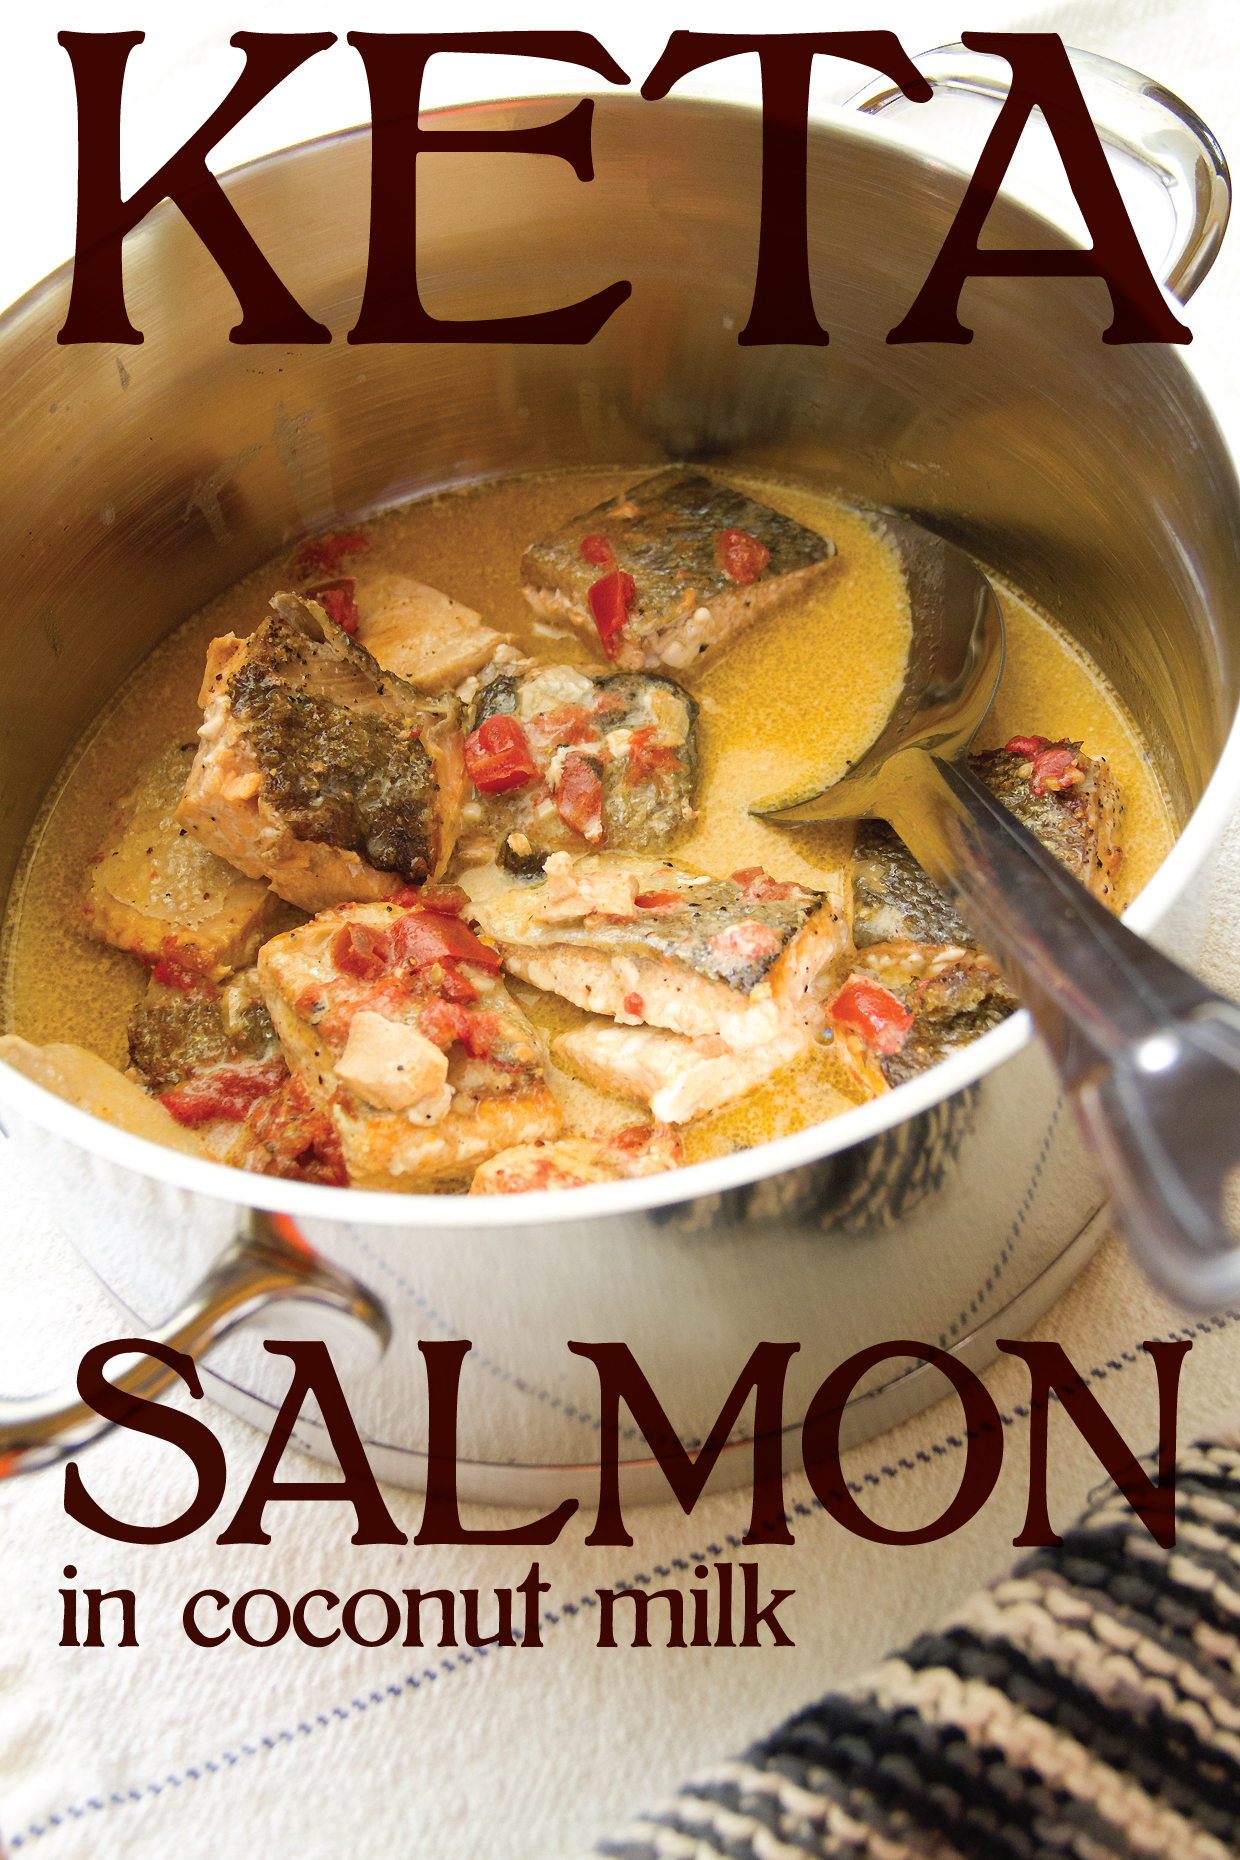 Chum salmon: cooking recipe with photo 50